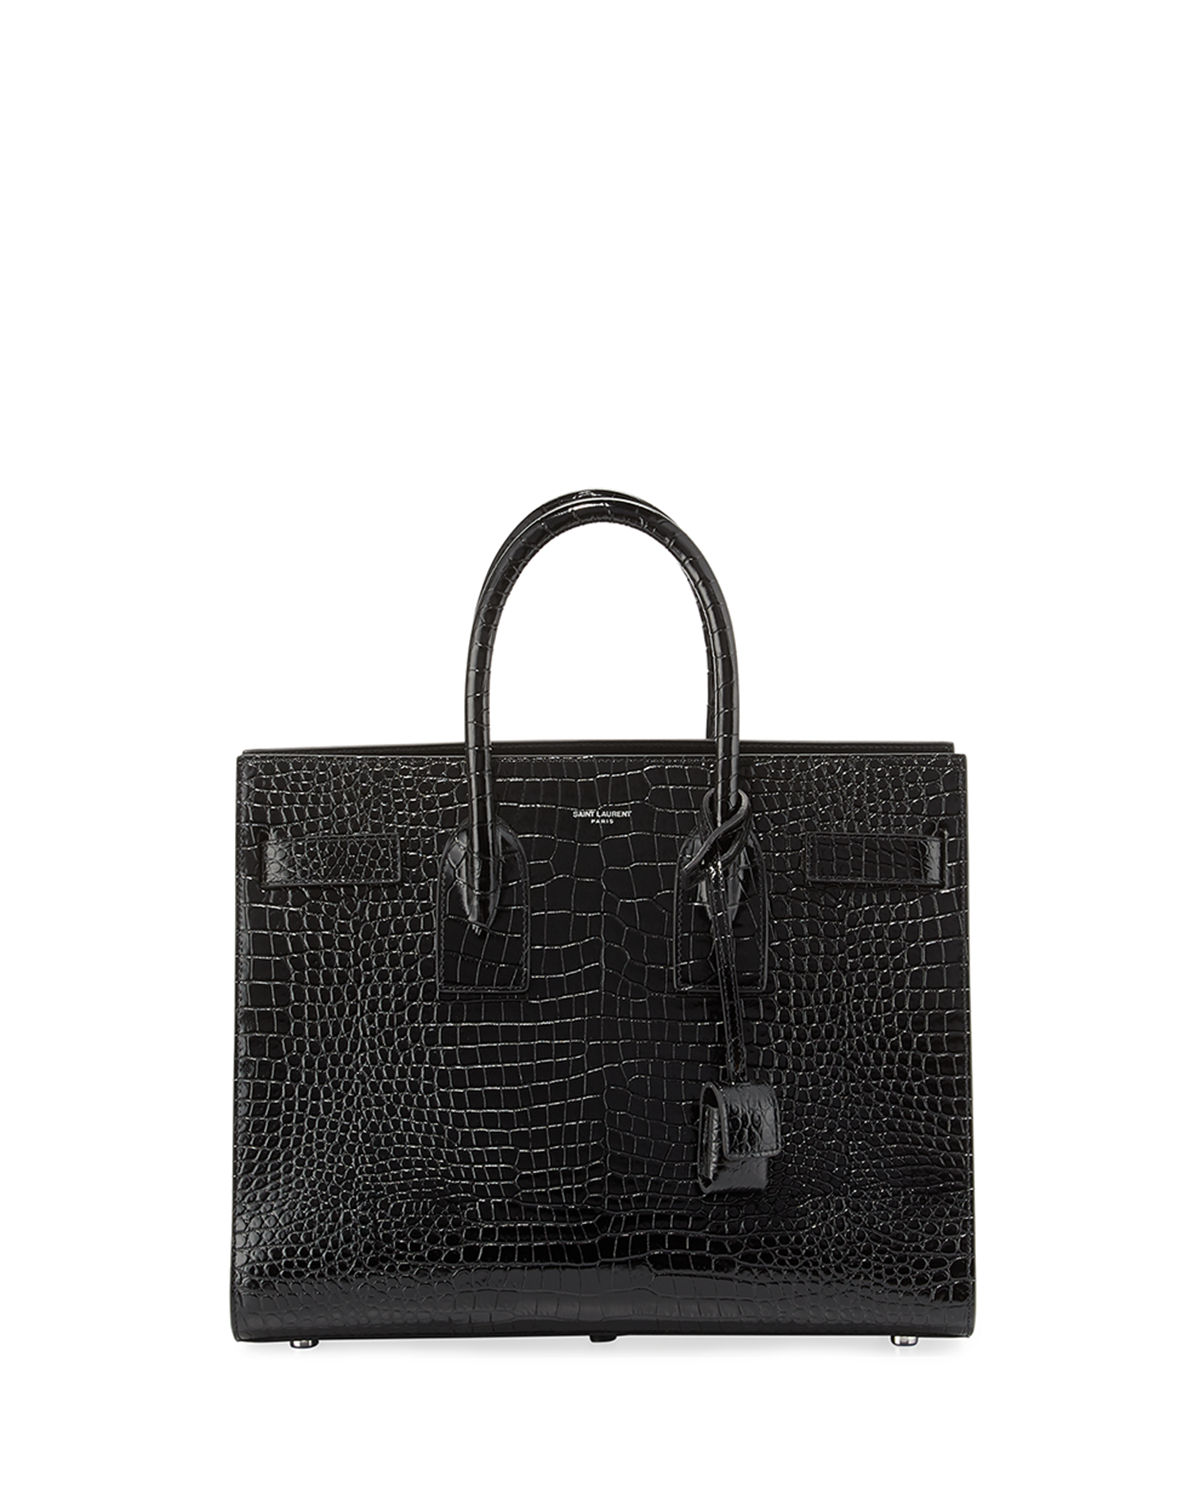 Saint LaurentSac de Jour Small Crocodile-Embossed Satchel Bag - Silver  Hardware e6379949df7c8